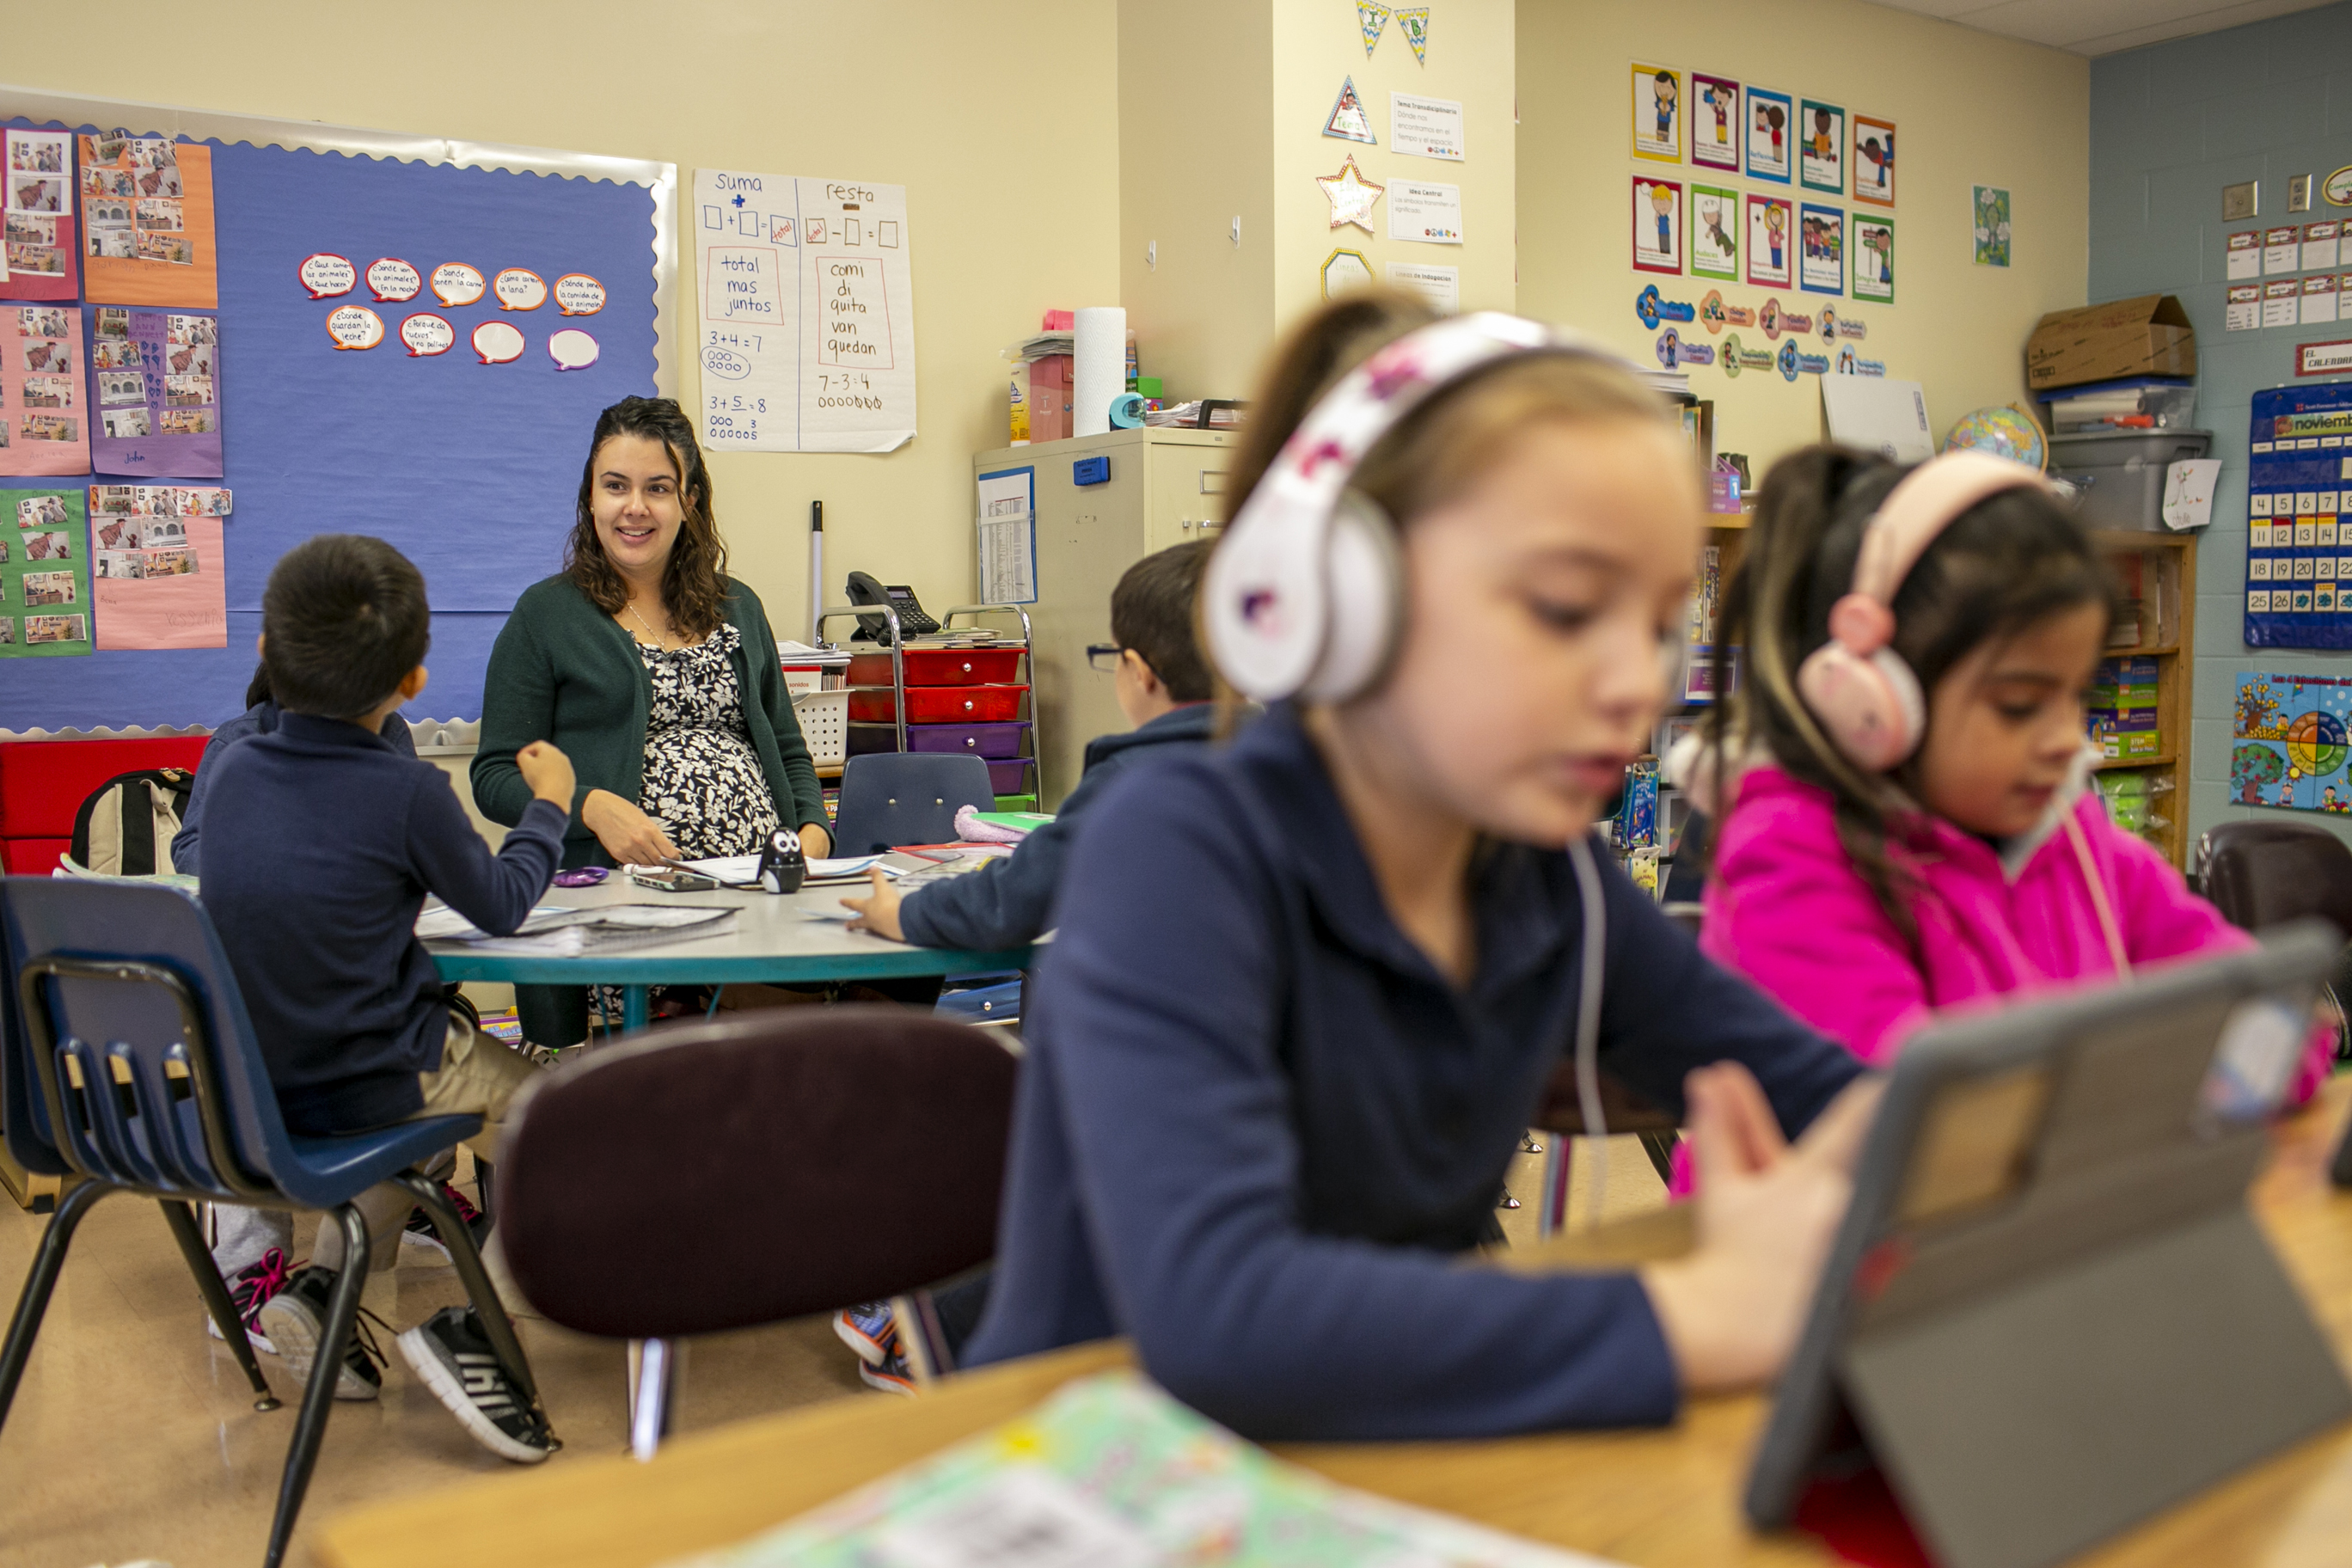 Increased K-12 spending and COVID relief funds comes after years of underinvestment in K-12 education, Education Secretary Miguel Cardona says.